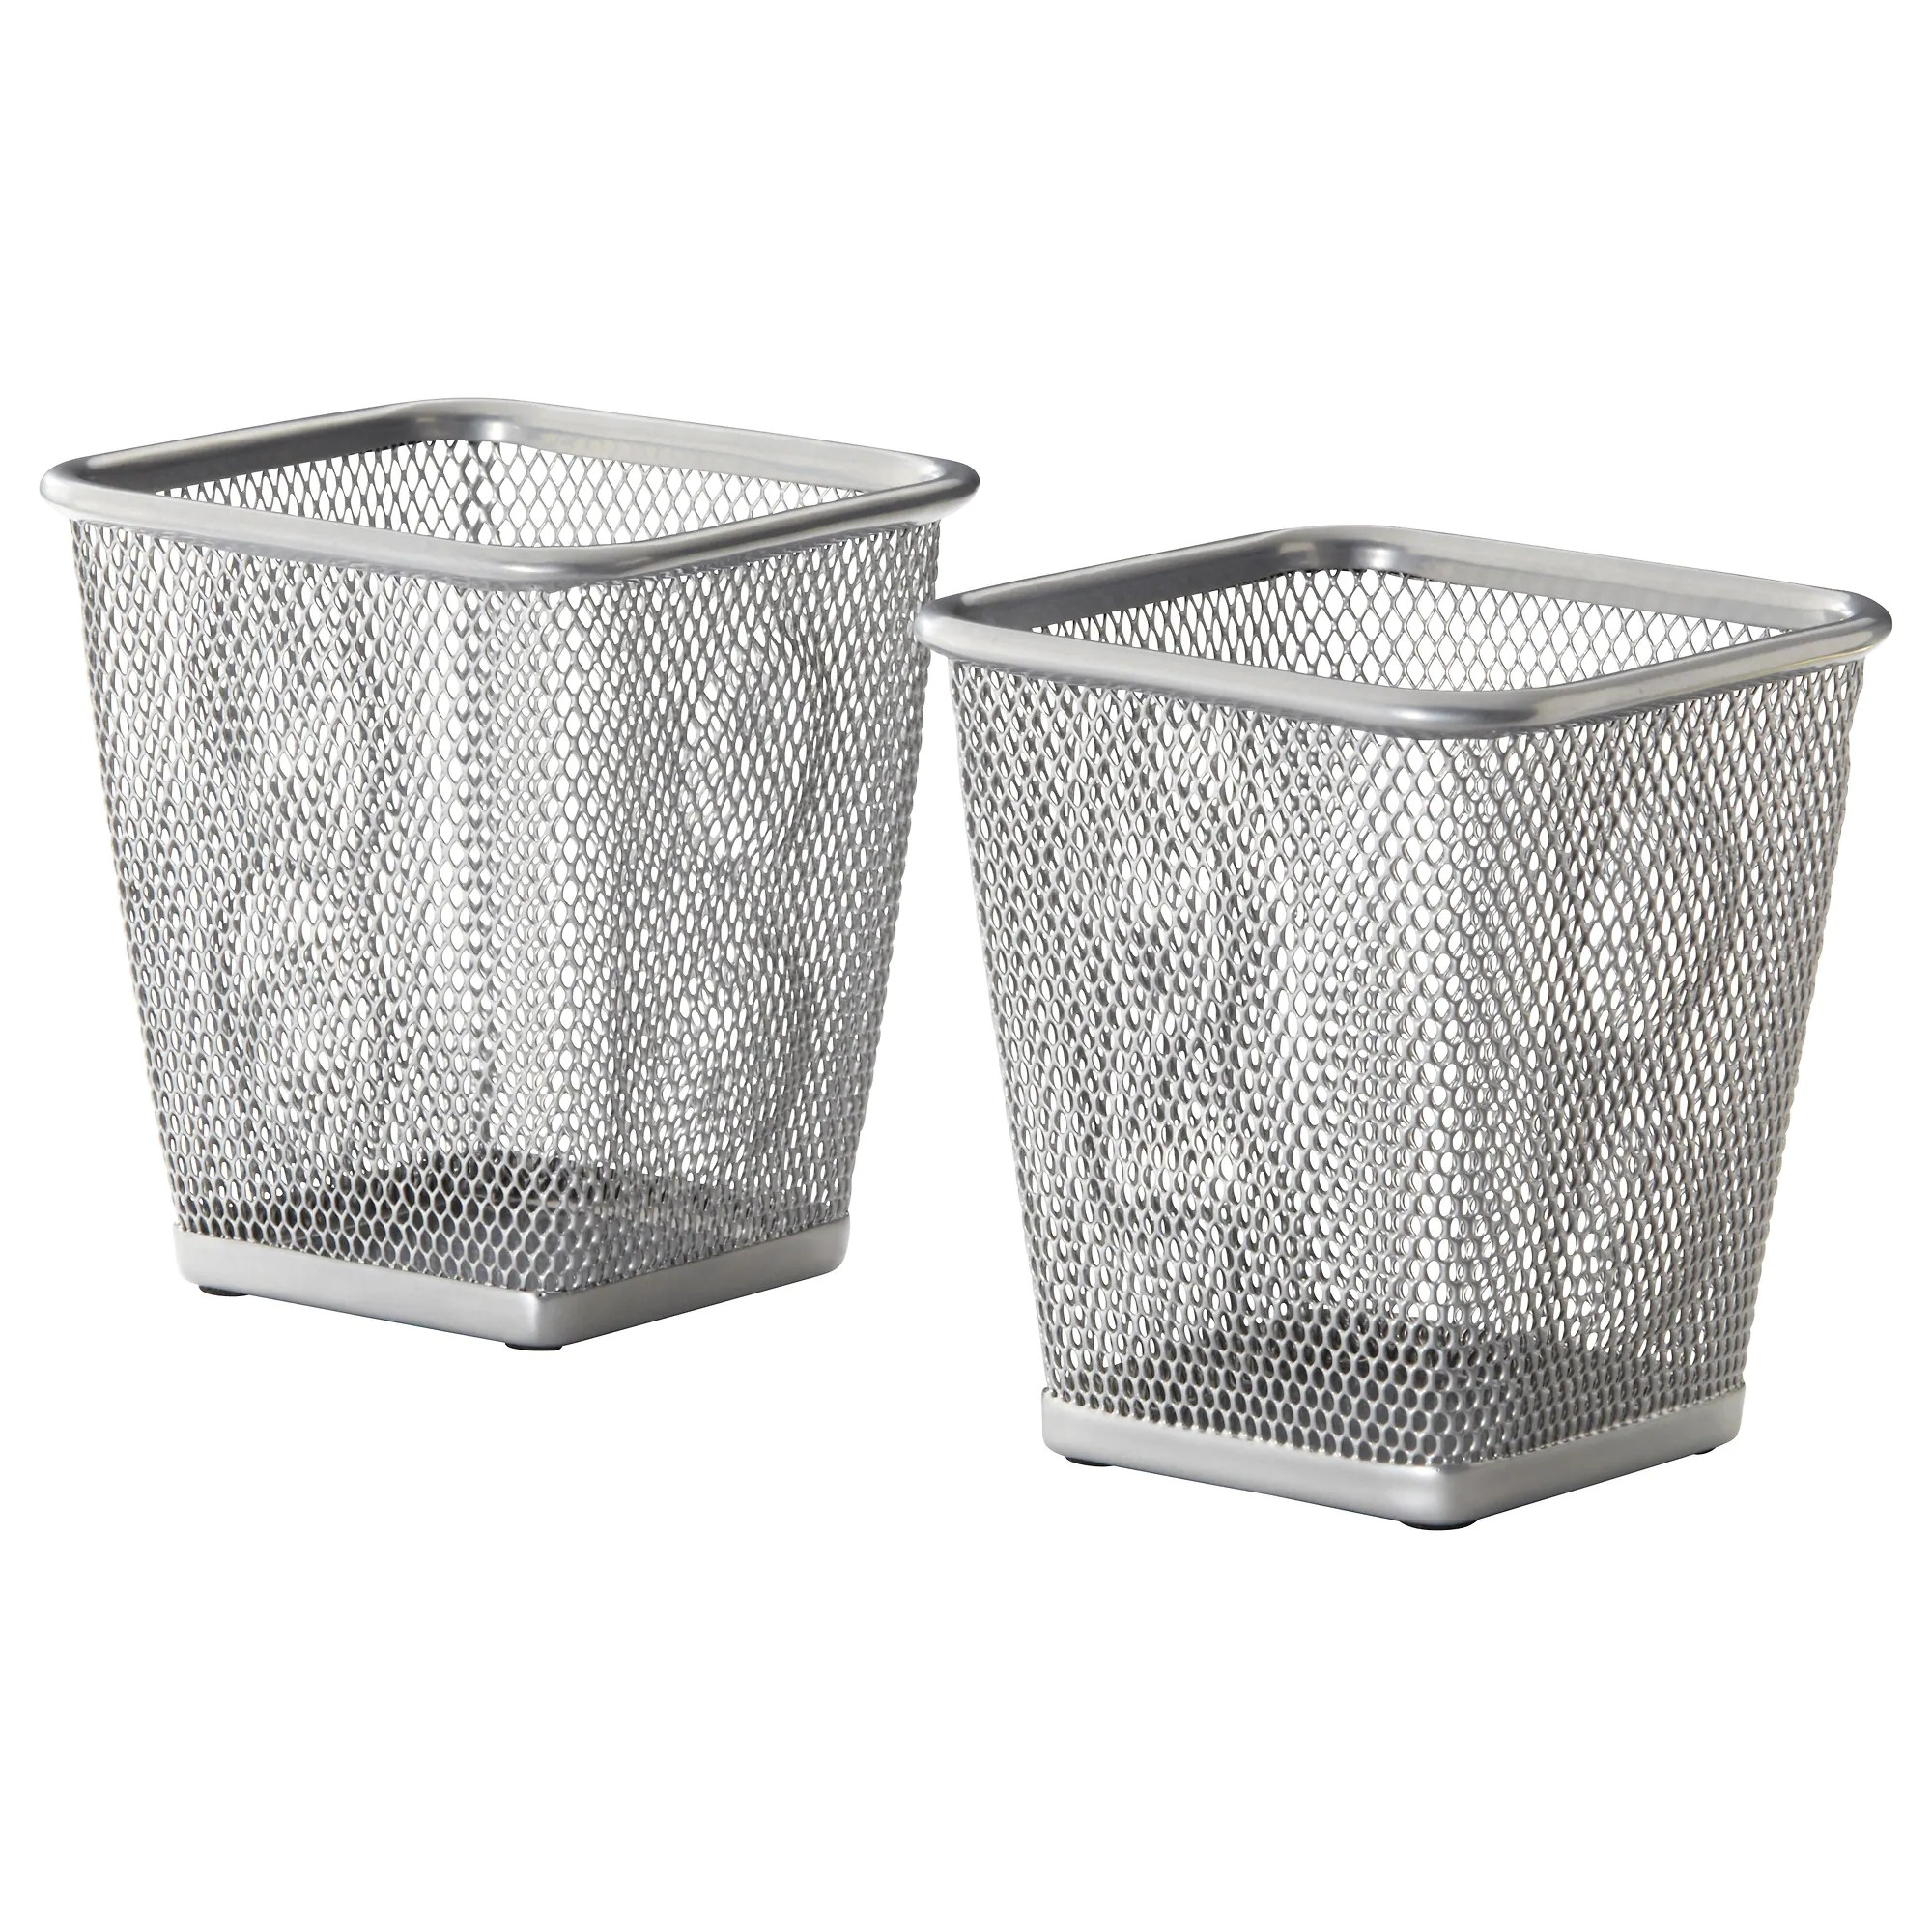 Ikea Box Holder Dokument Pencil Cup Silver Color